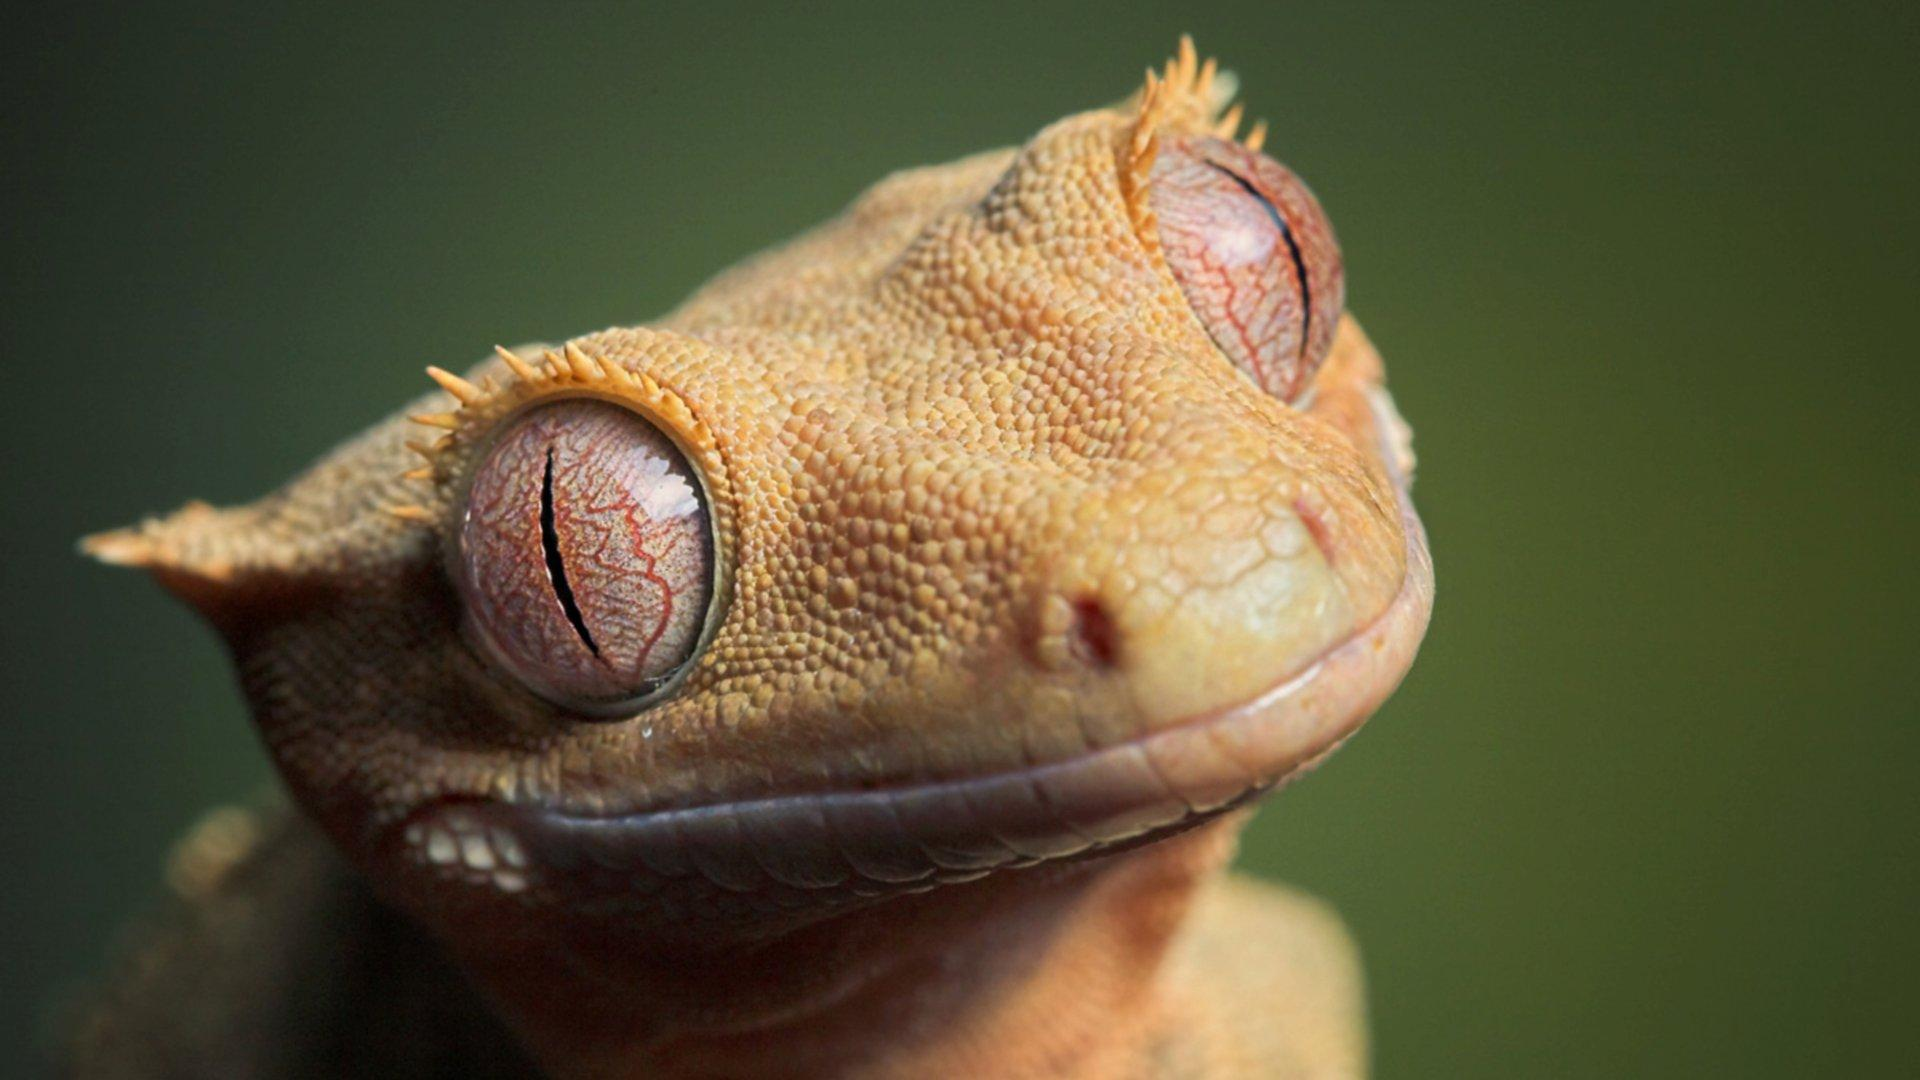 Gecko HD Wallpapers » FullHDWpp